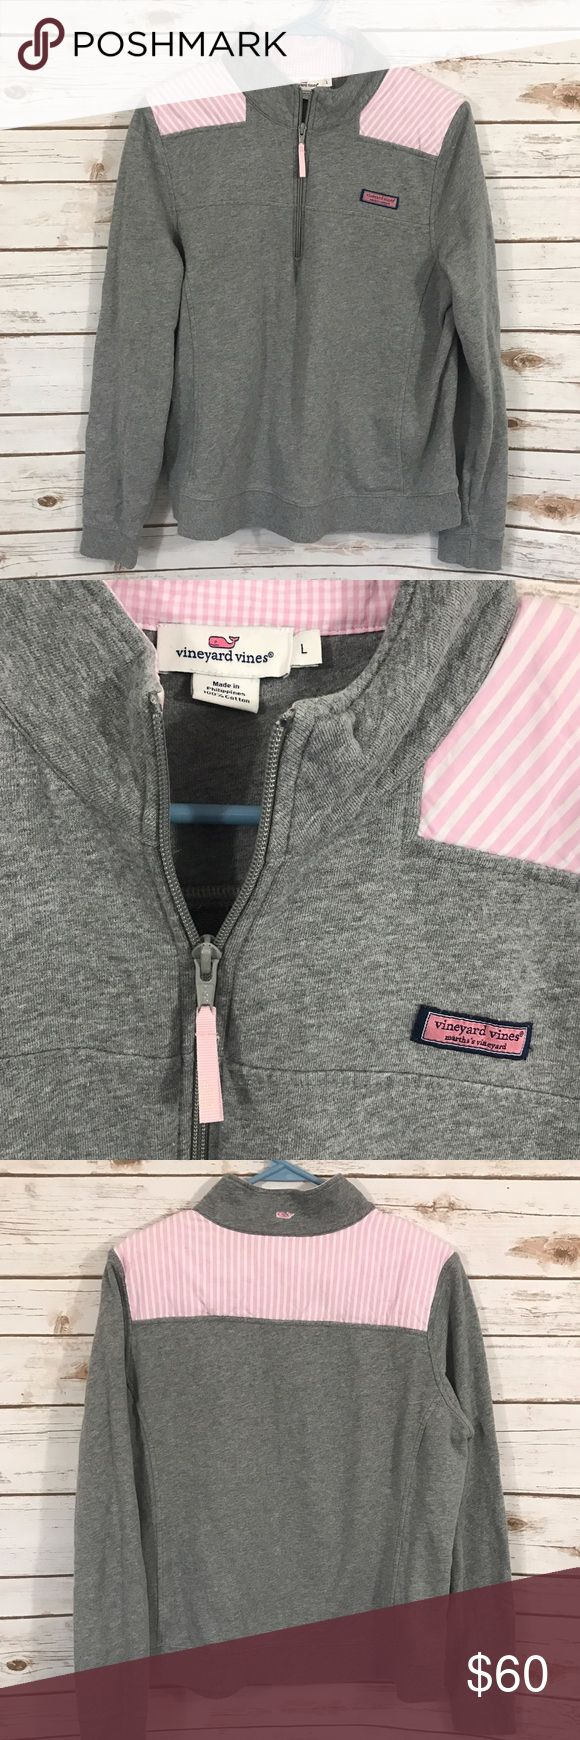 Vineyard Vines Shep Shirt Gray Pink Stripes Sz L Gray with pink and white stripes half zip pullover shep shirt. No stains or holes. Perfect colors for spring! Thanks for shopping our closet! Vineyard Vines Tops Sweatshirts & Hoodies